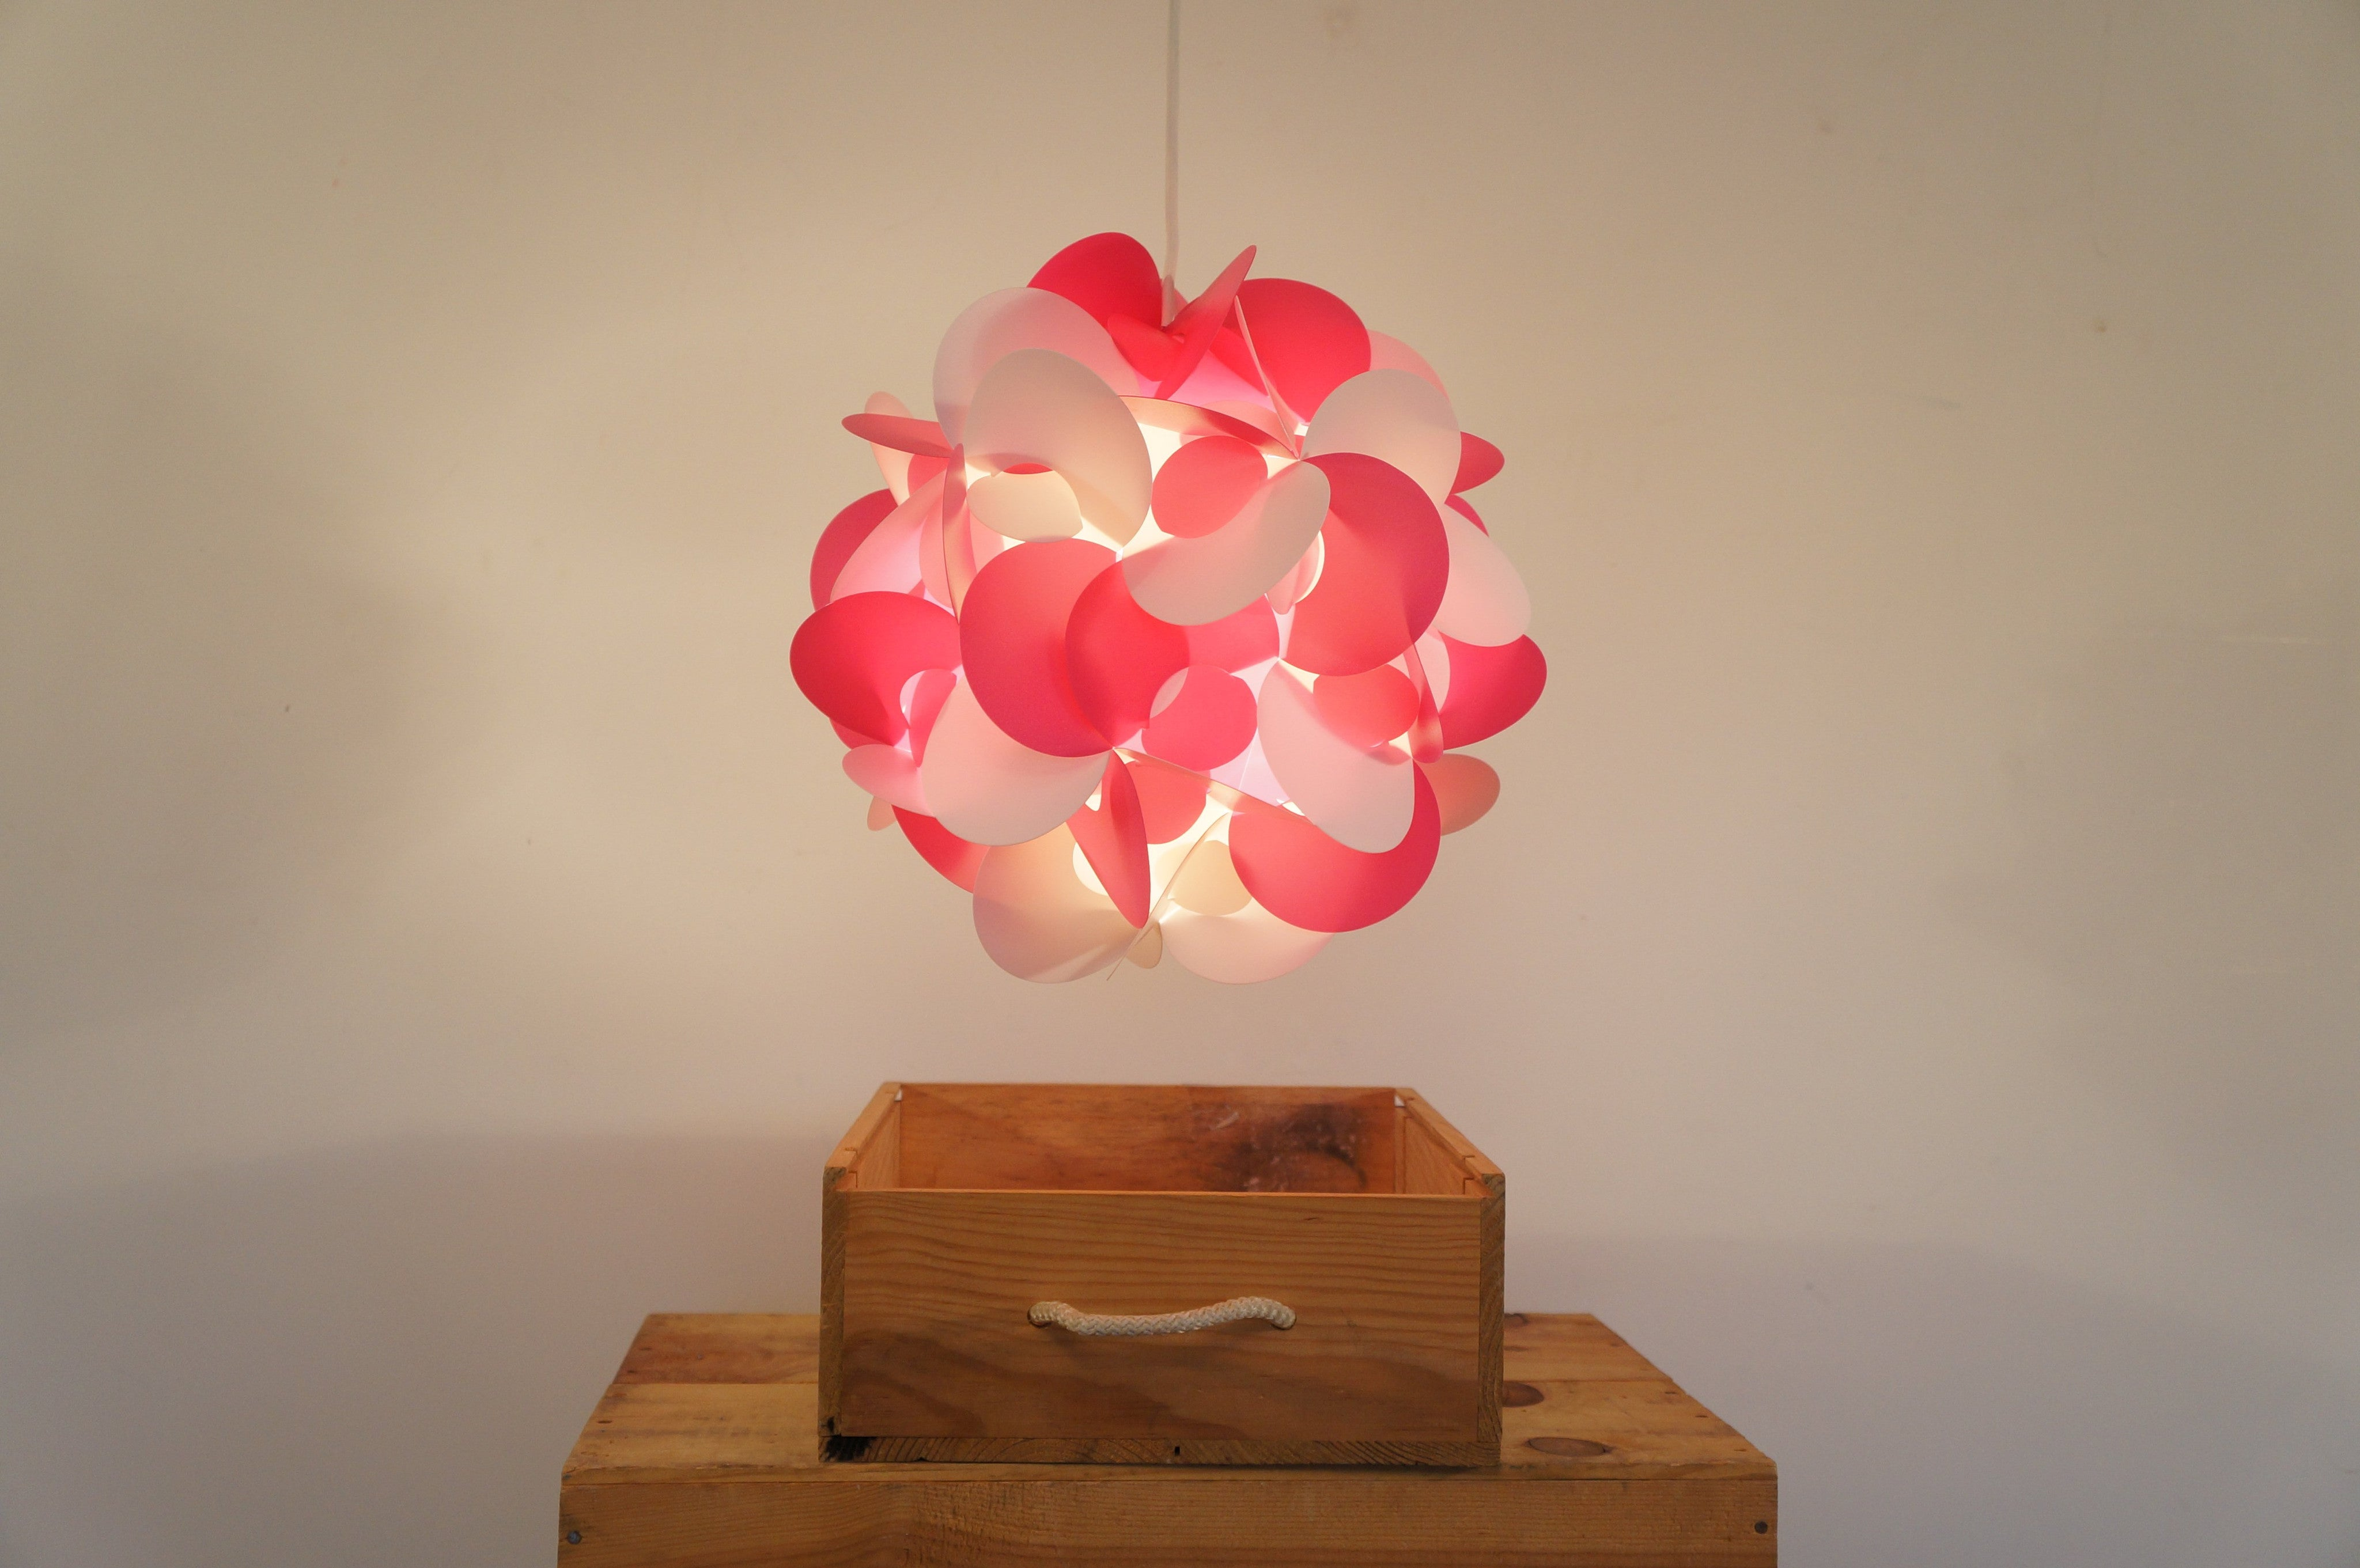 Curve Light Shade In Pink And White  Smart Deco Homeware Lighting and Art by Jacqueline hammond